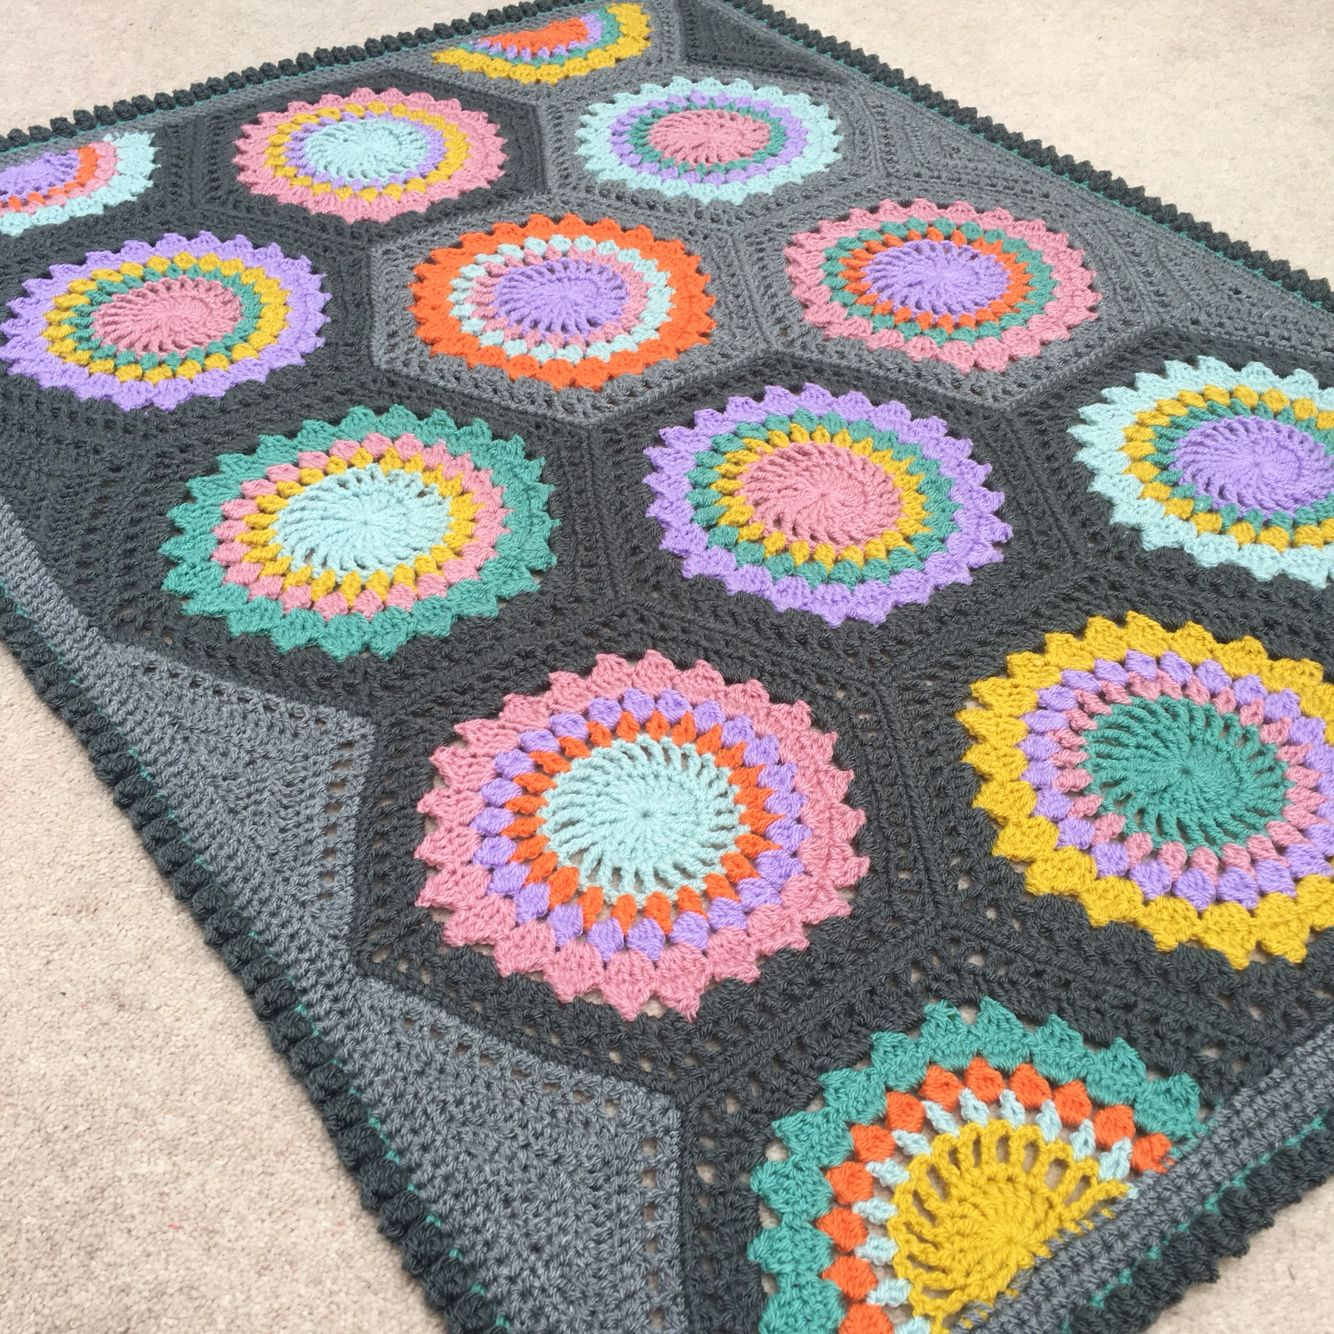 Hexagon burst blanket pattern by cypresstextiles crochet hexagon burst blanket pattern by cypresstextiles bankloansurffo Image collections